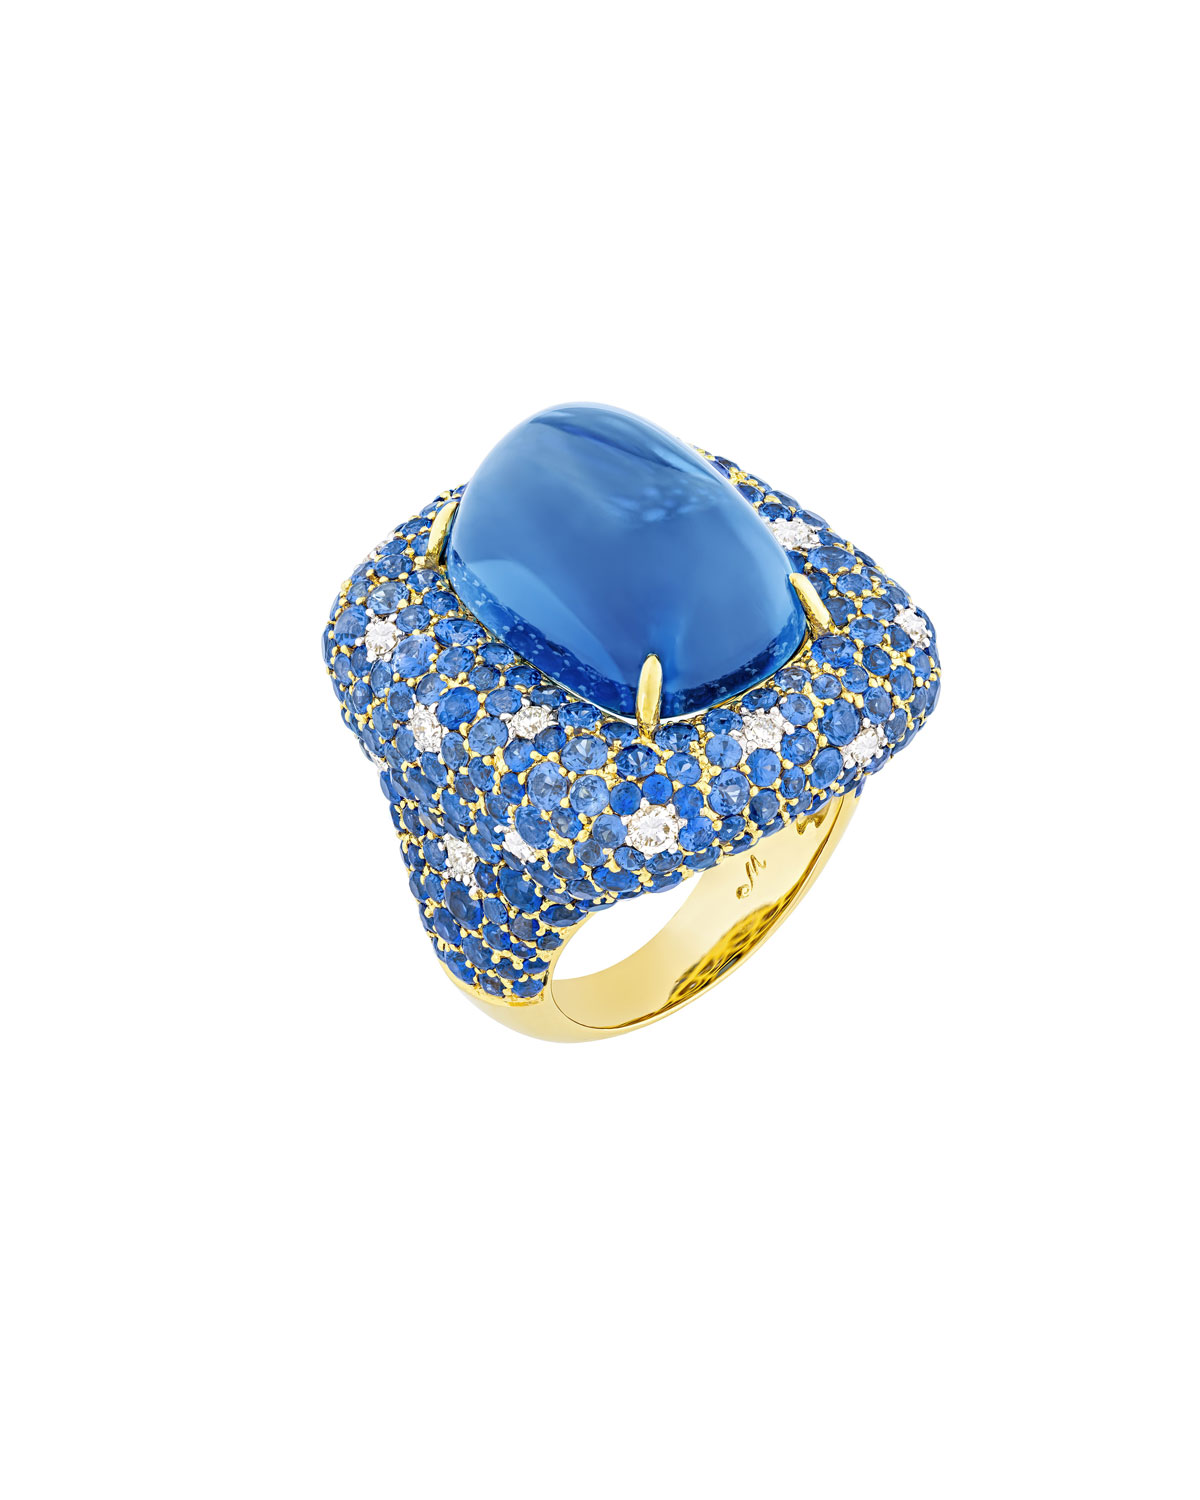 Marbella 18k Gold & Denim Blue Topaz Ring